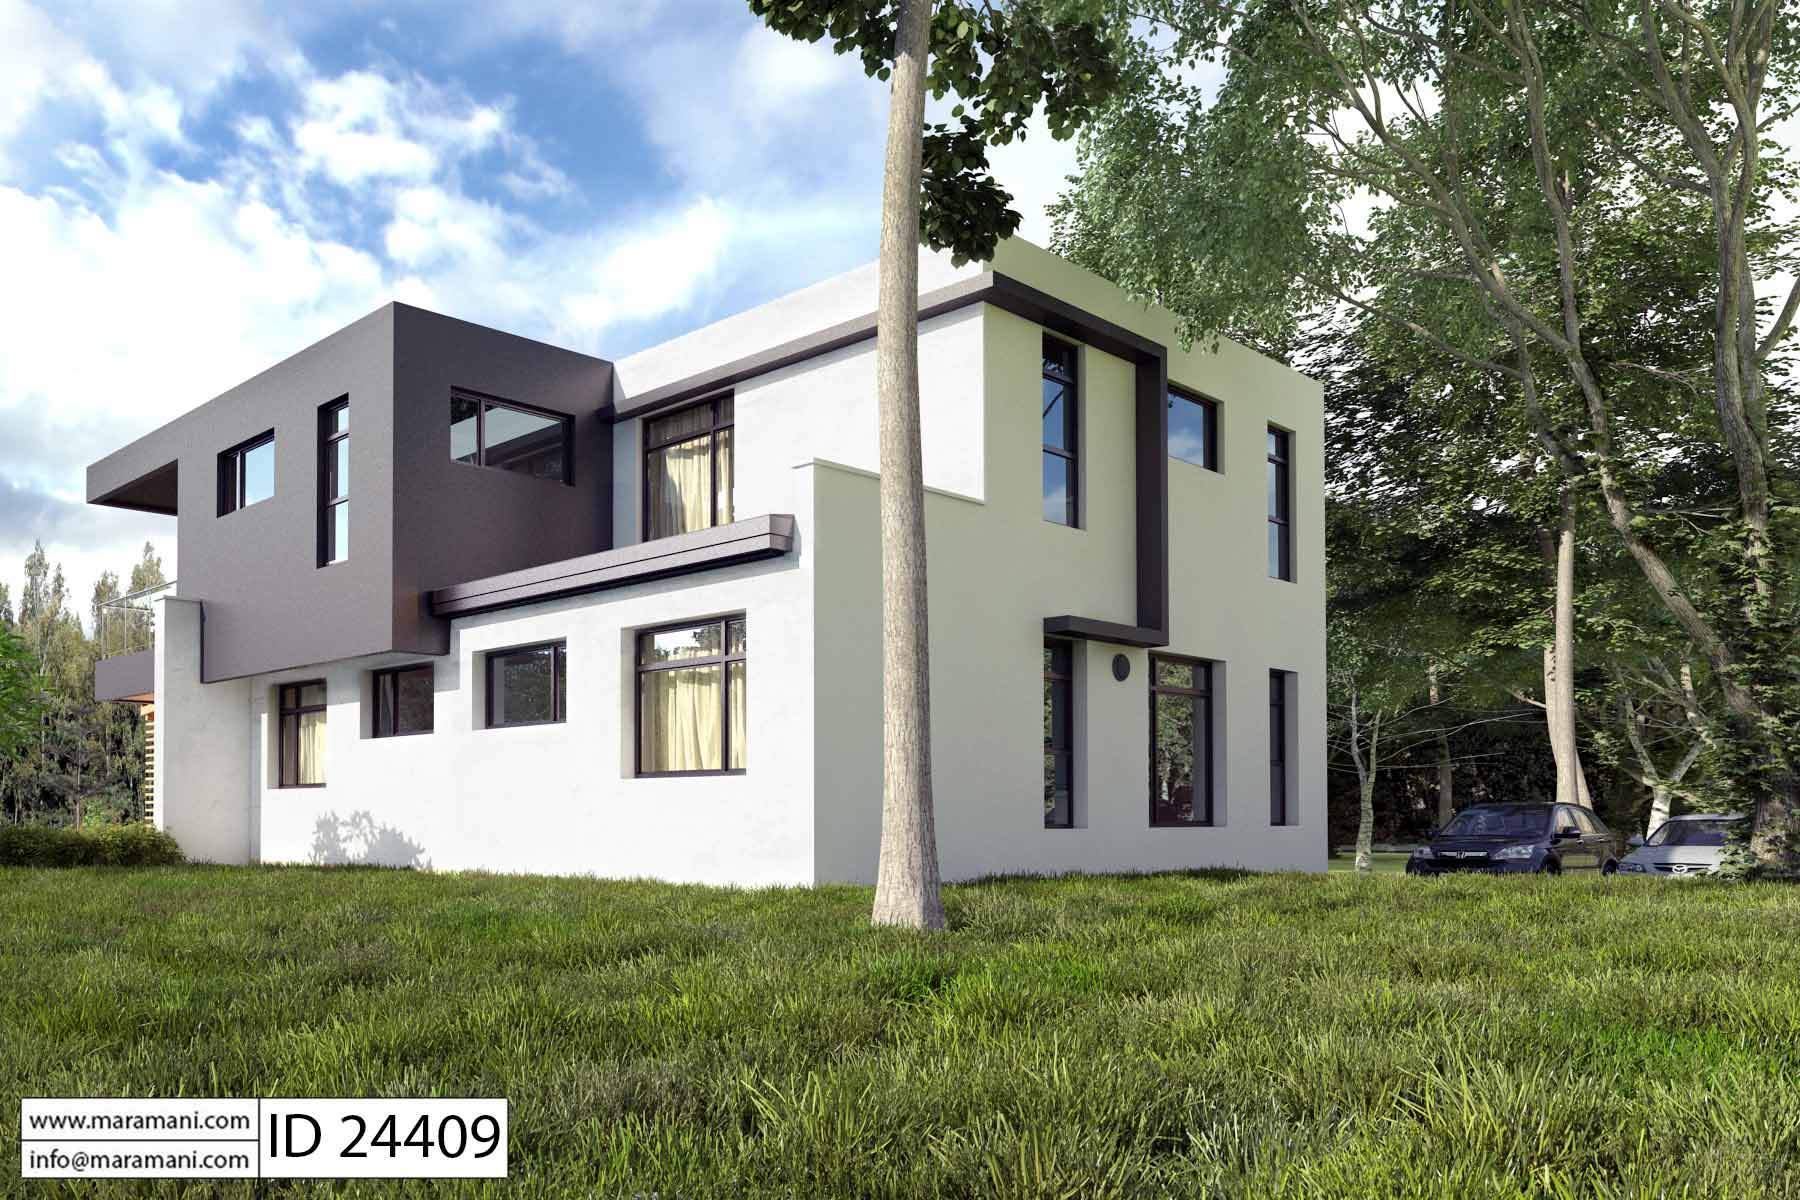 Superior Modern House Plans With 4 Bedrooms Part - 4: Maramani.com